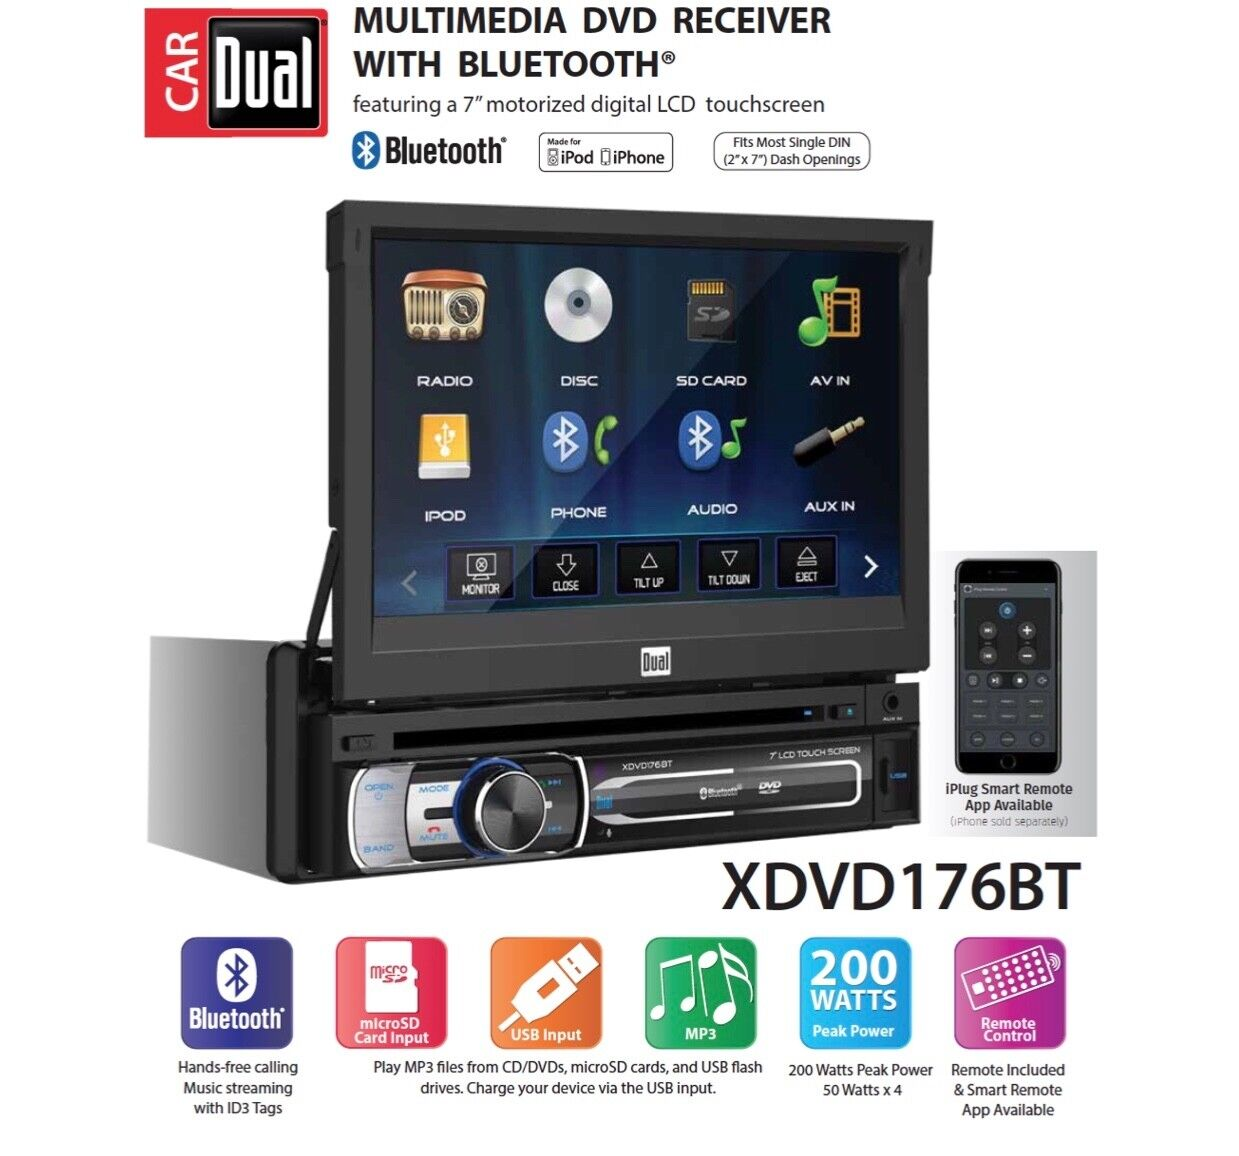 Dual Electronics XDVD176BT 7-inch LED Backlit LCD Touch Scre